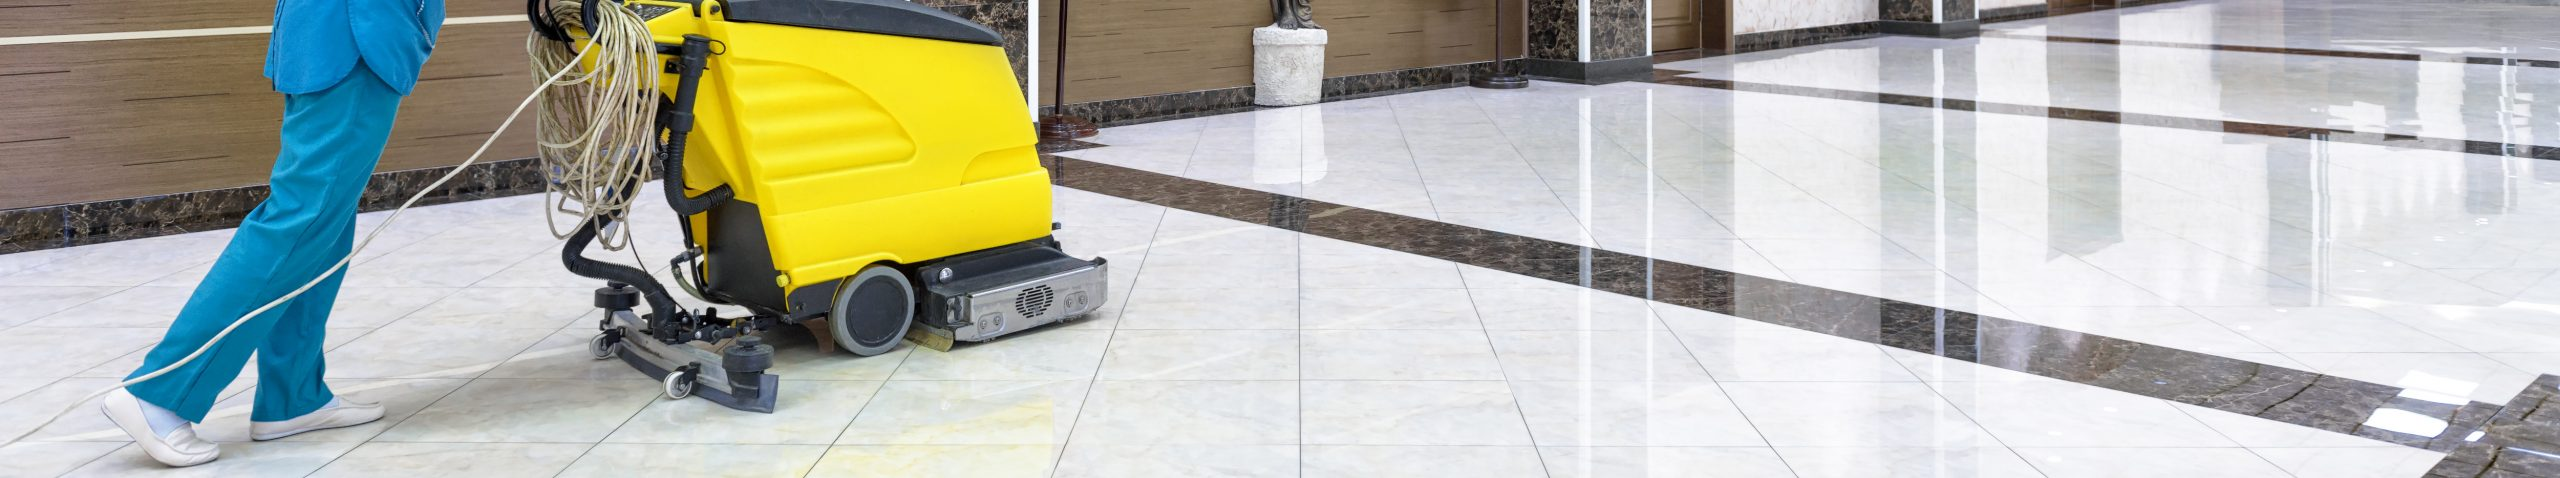 Guaranteed Cleaning Services